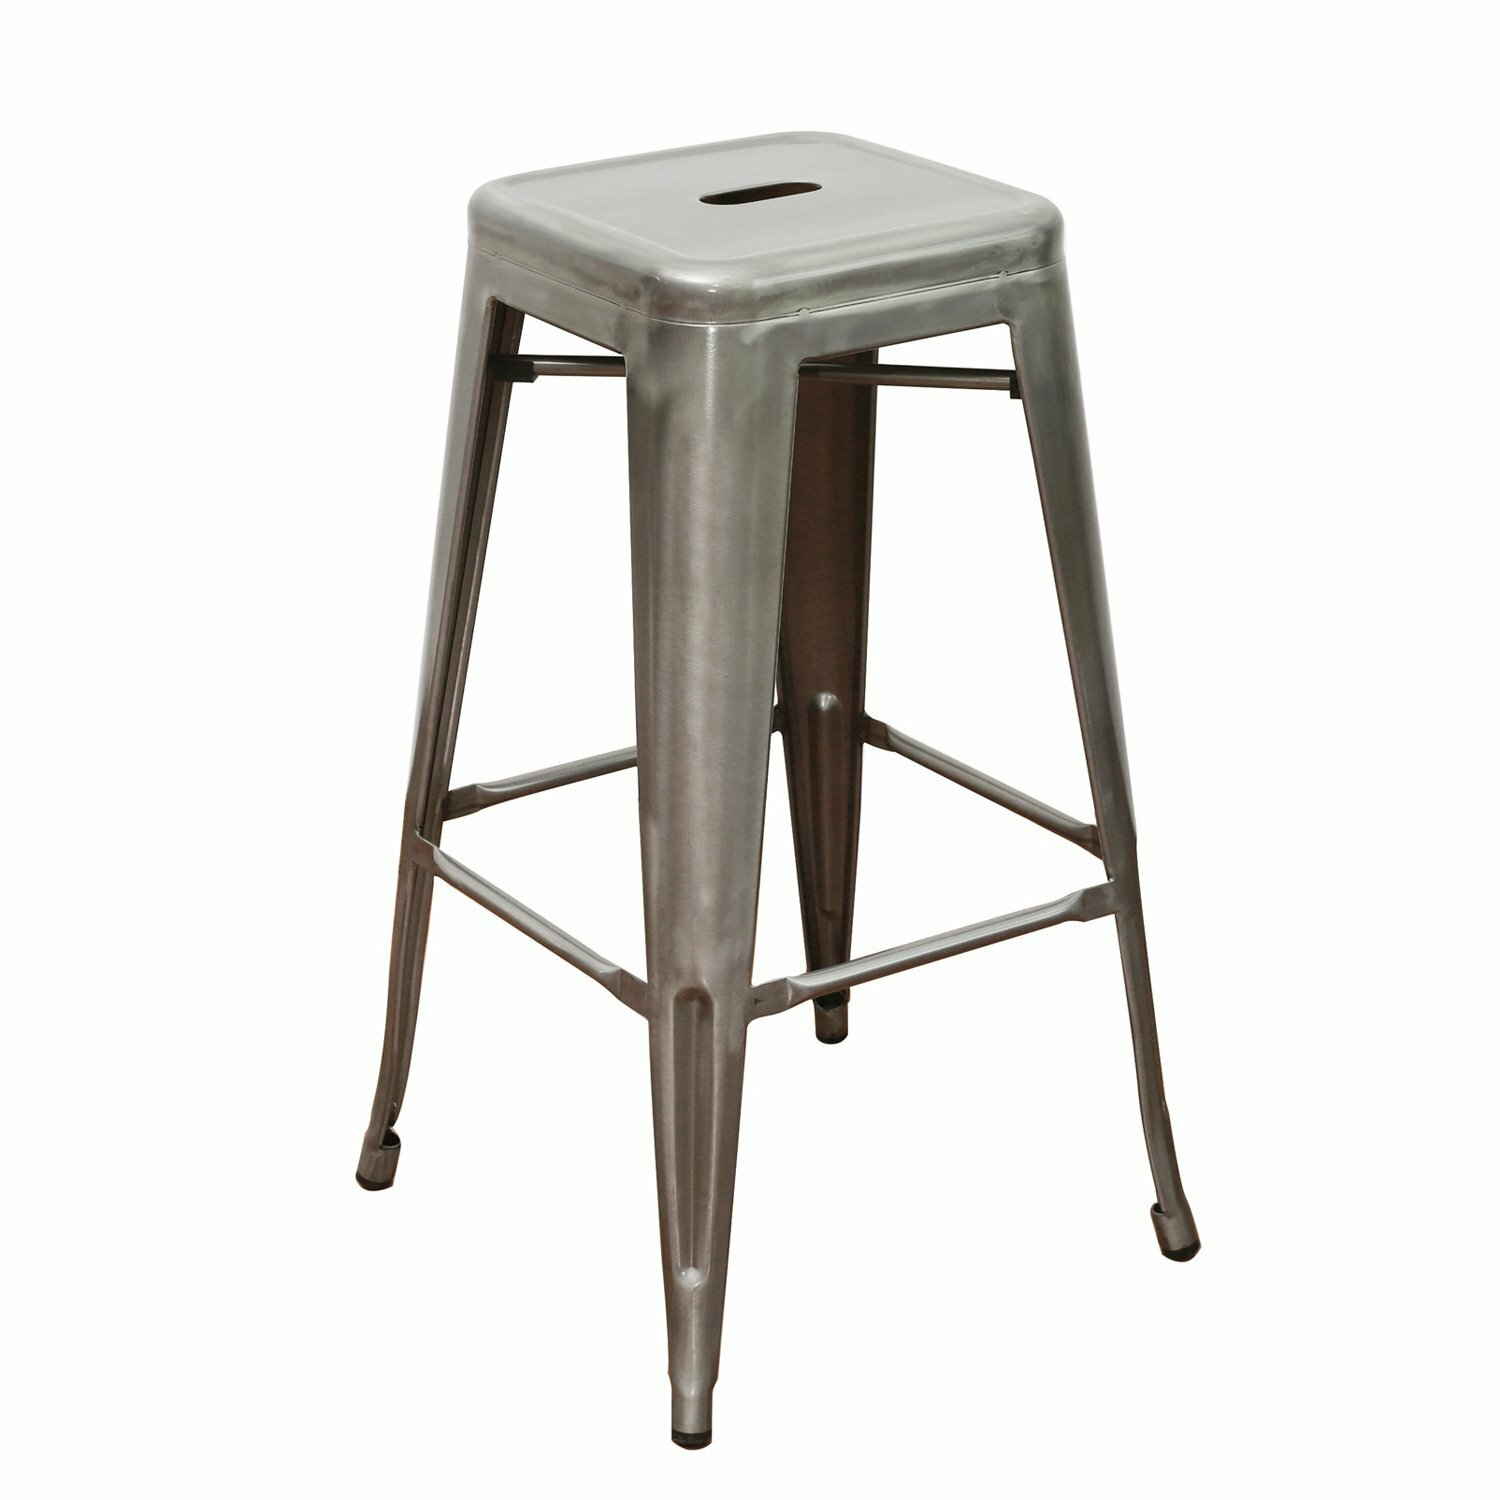 30 Bar Stools 28 Images 30 Quot Bar Stool In Espresso